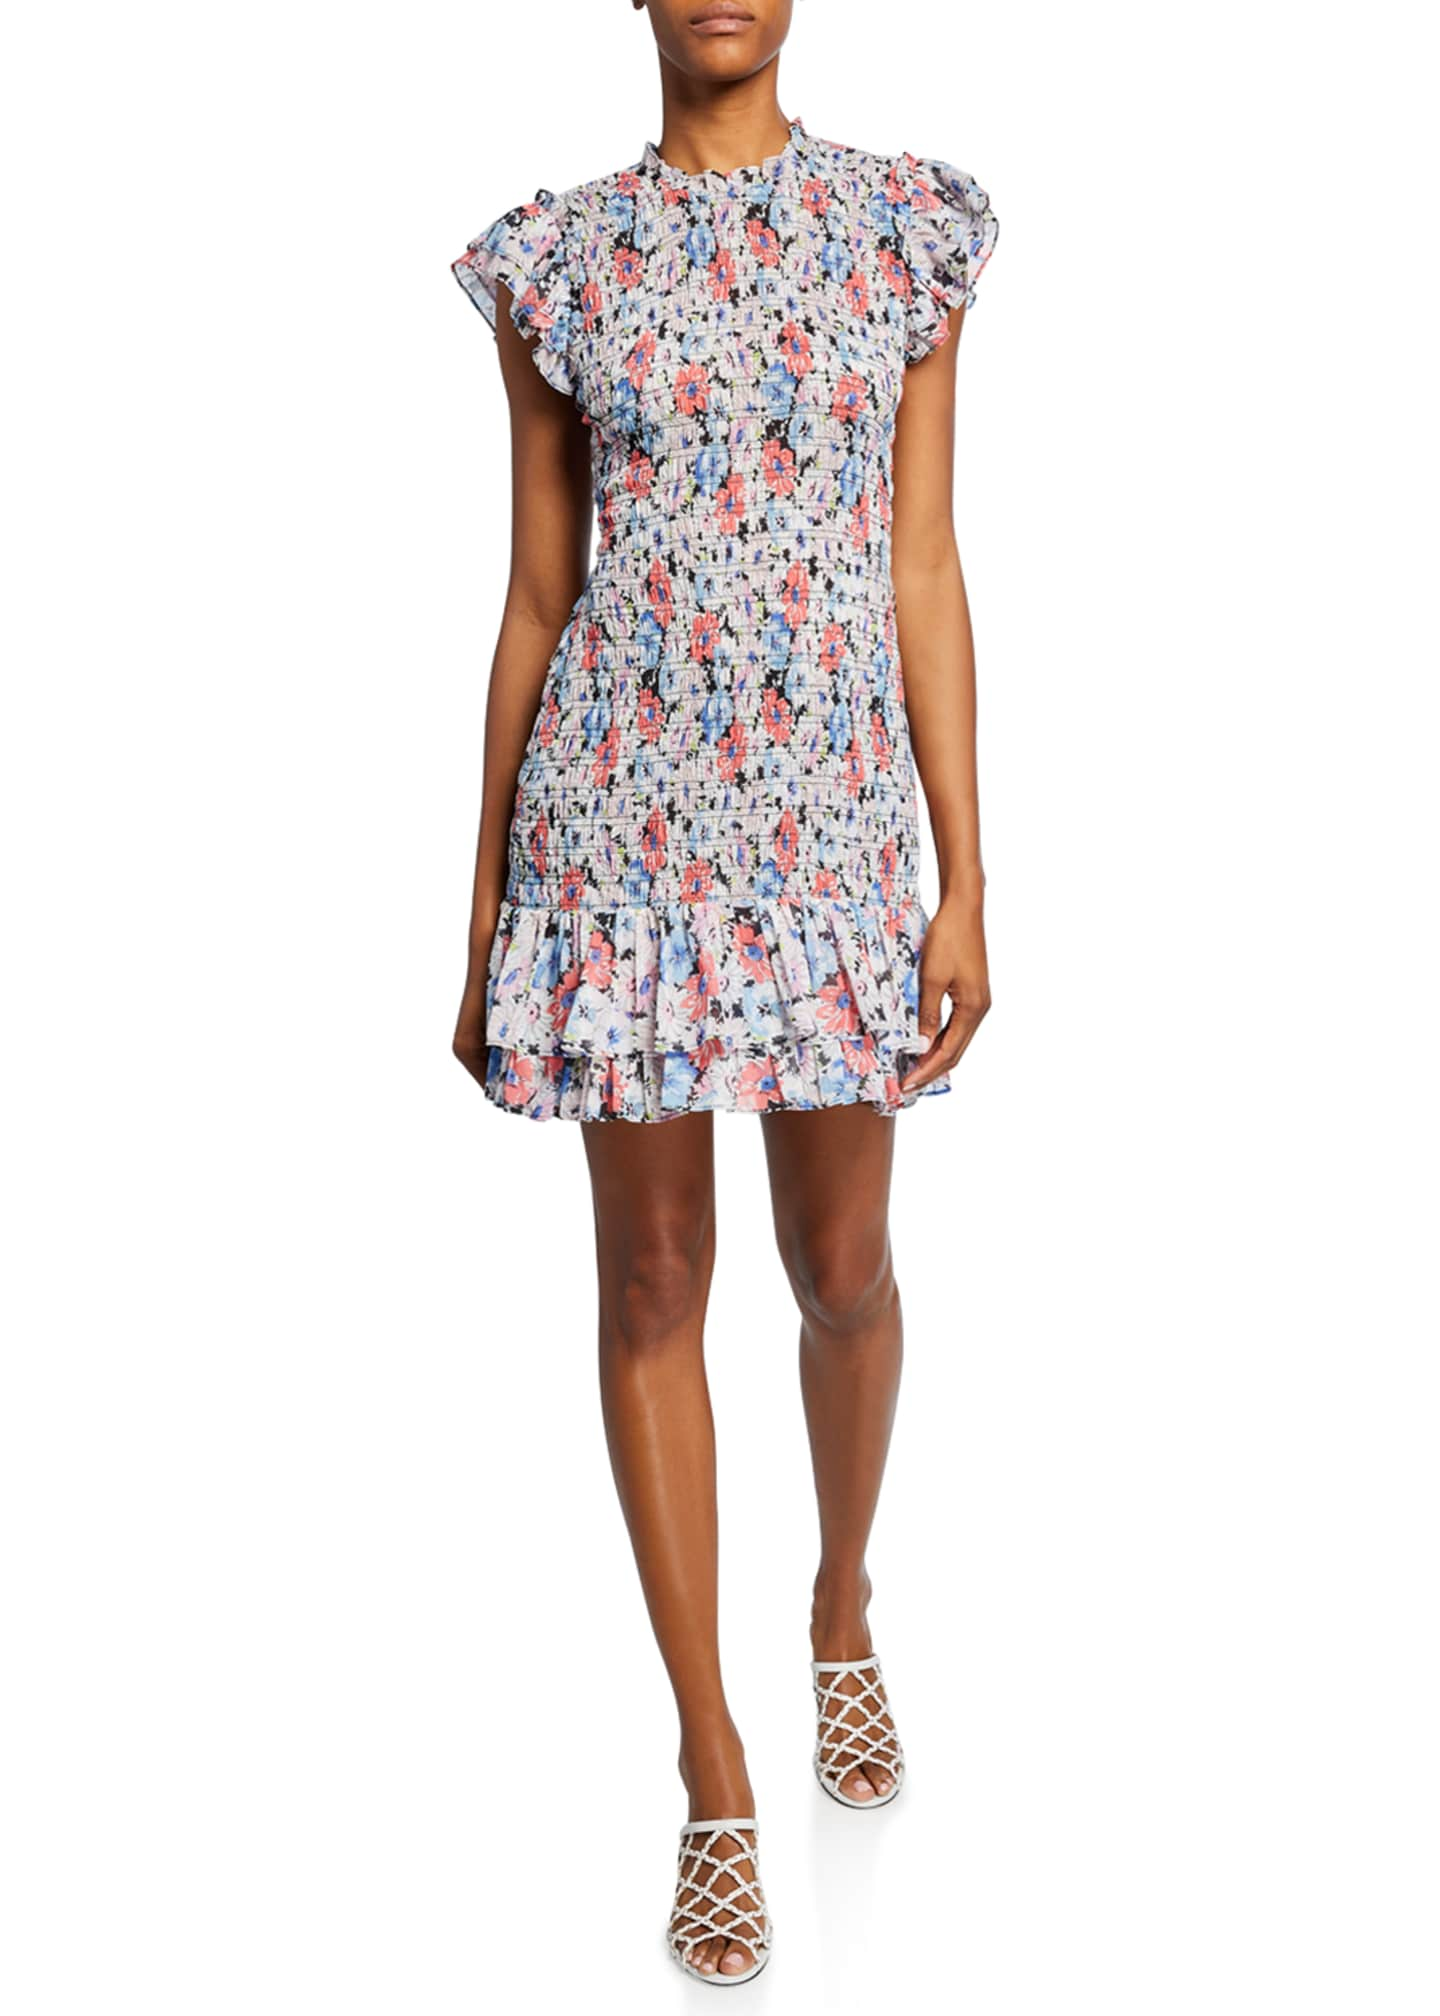 Veronica Beard Cici Smocked Floral Short Dress